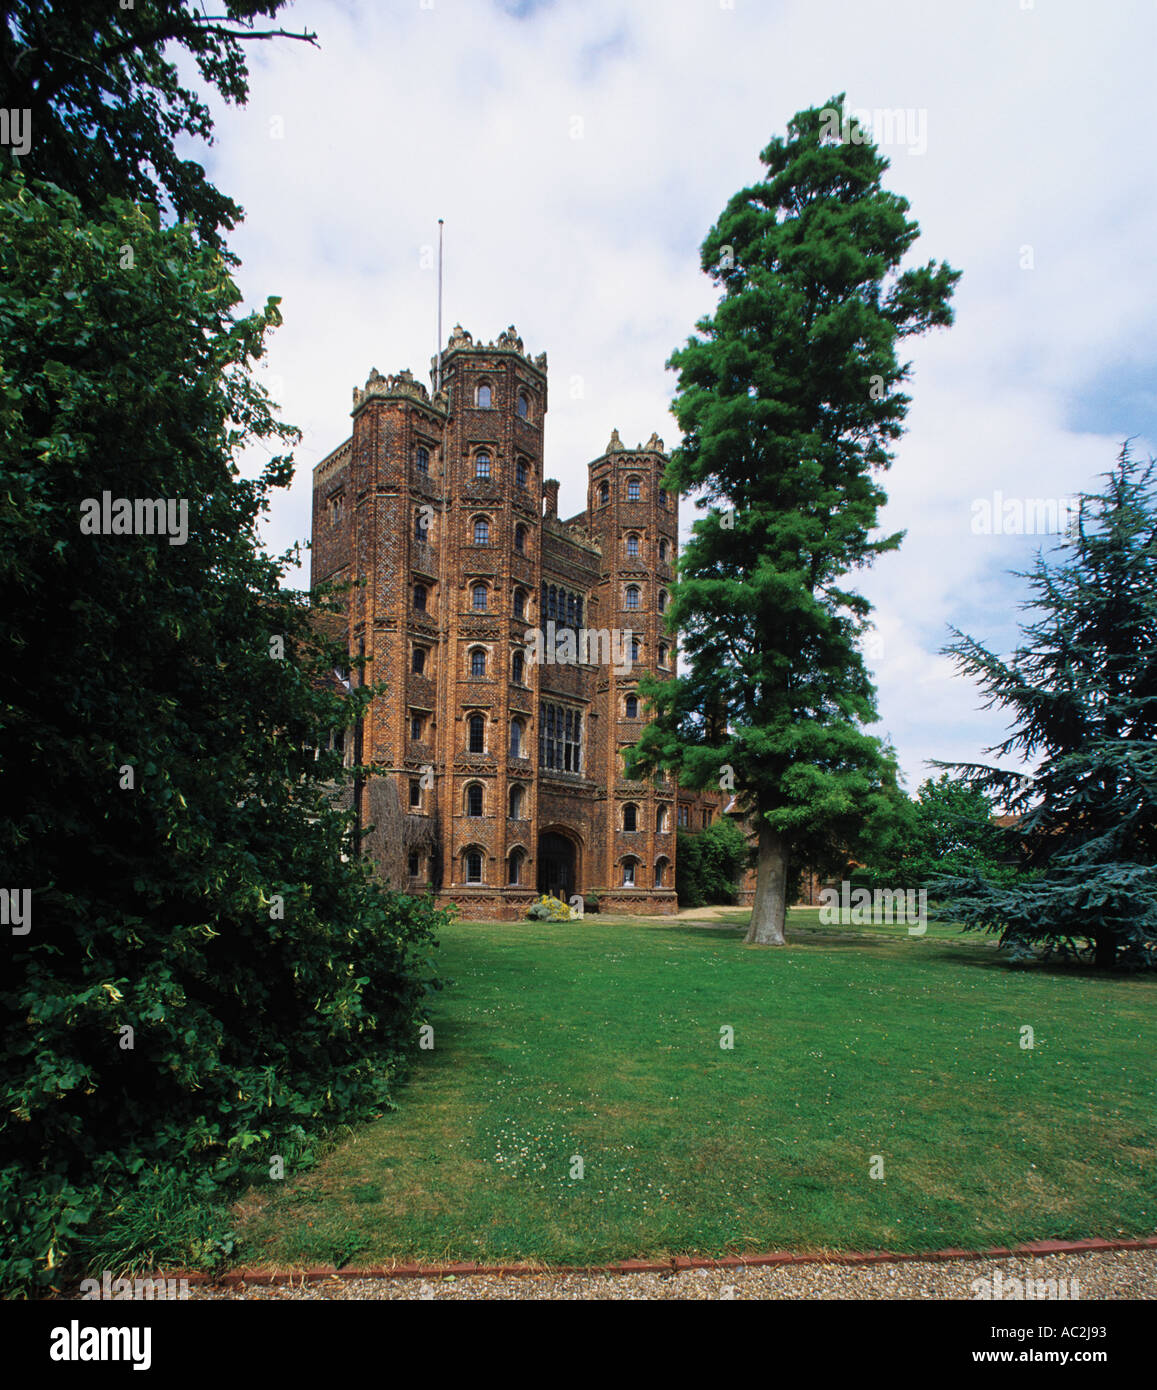 The 80 foot Tower at Layer Marney built in 1500 by Sir Henry Marney who died in 1523 Seven miles South West of Colchester - Stock Image